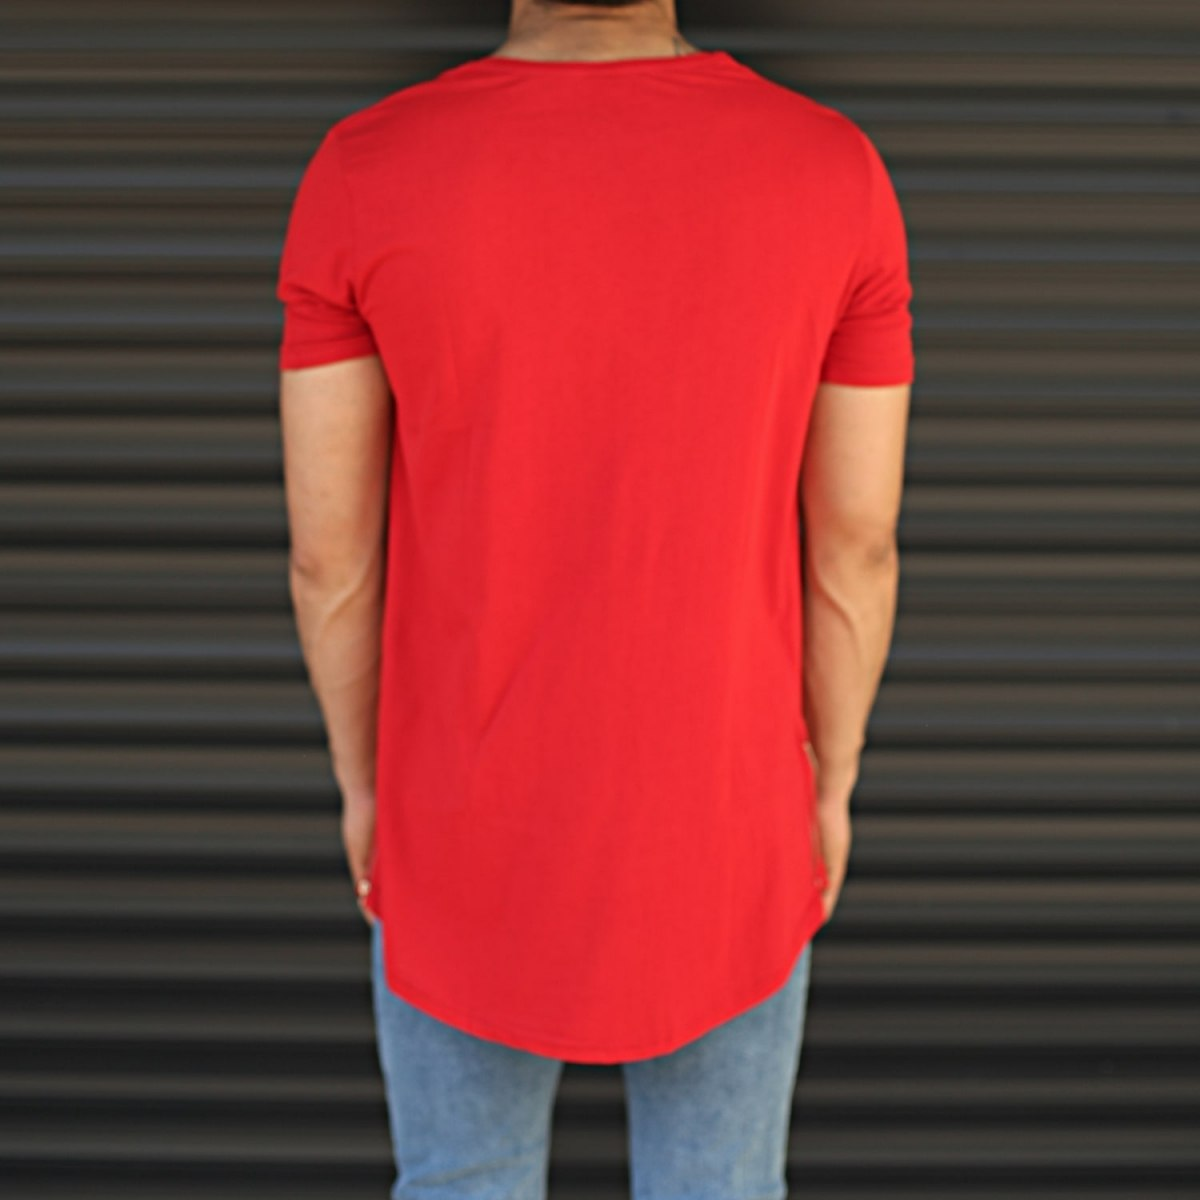 Men's Longline Round Neck T-Shirt With Zipper In Red Mv Premium Brand - 5